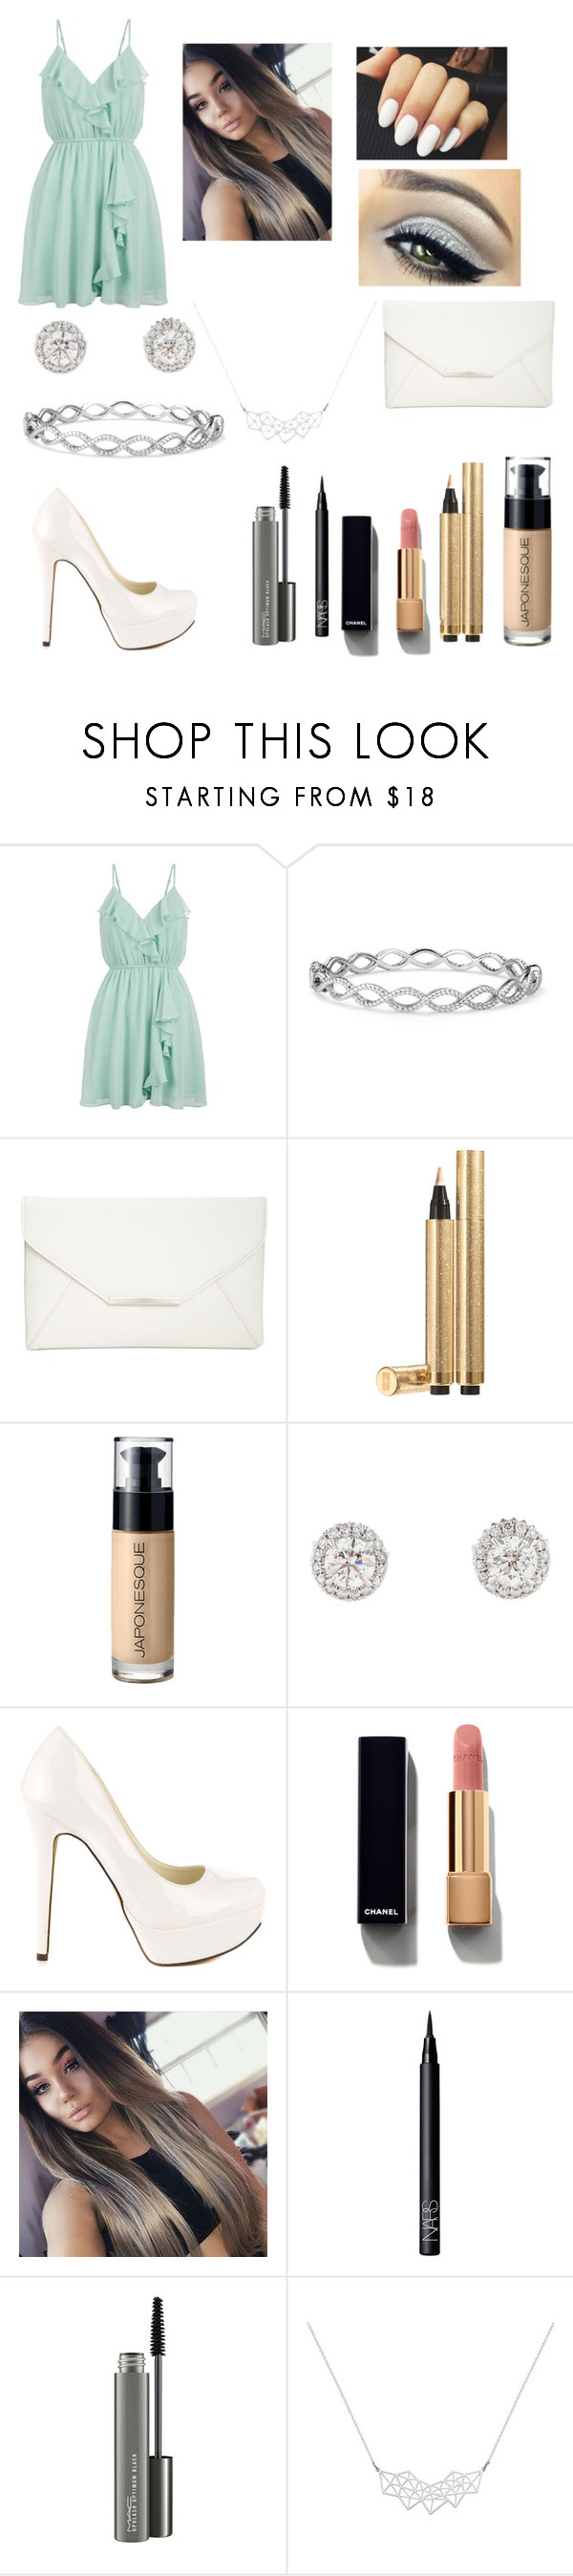 """Untitled #135"" by jprinceceasimpson on Polyvore featuring New Look, Blue Nile, Style & Co., Yves Saint Laurent, Japonesque, Michael Antonio, Chanel, NARS Cosmetics and MAC Cosmetics"